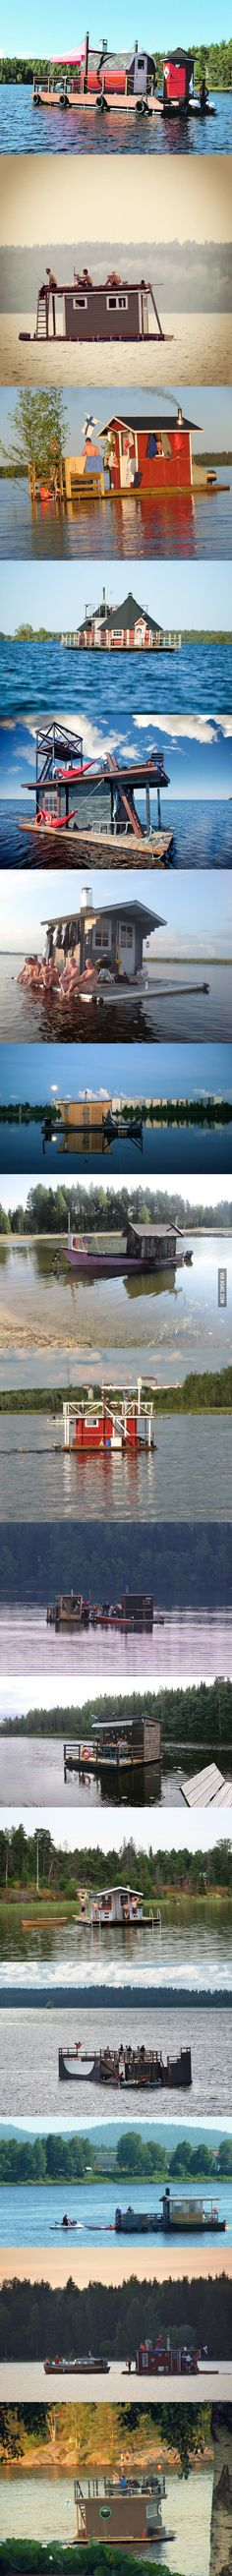 Floating saunas of Finland Saunas, Little Dream Home, Family Boats, Boating Tips, Infrared Sauna, Boat Stuff, Best Funny Pictures, Finland, Camping